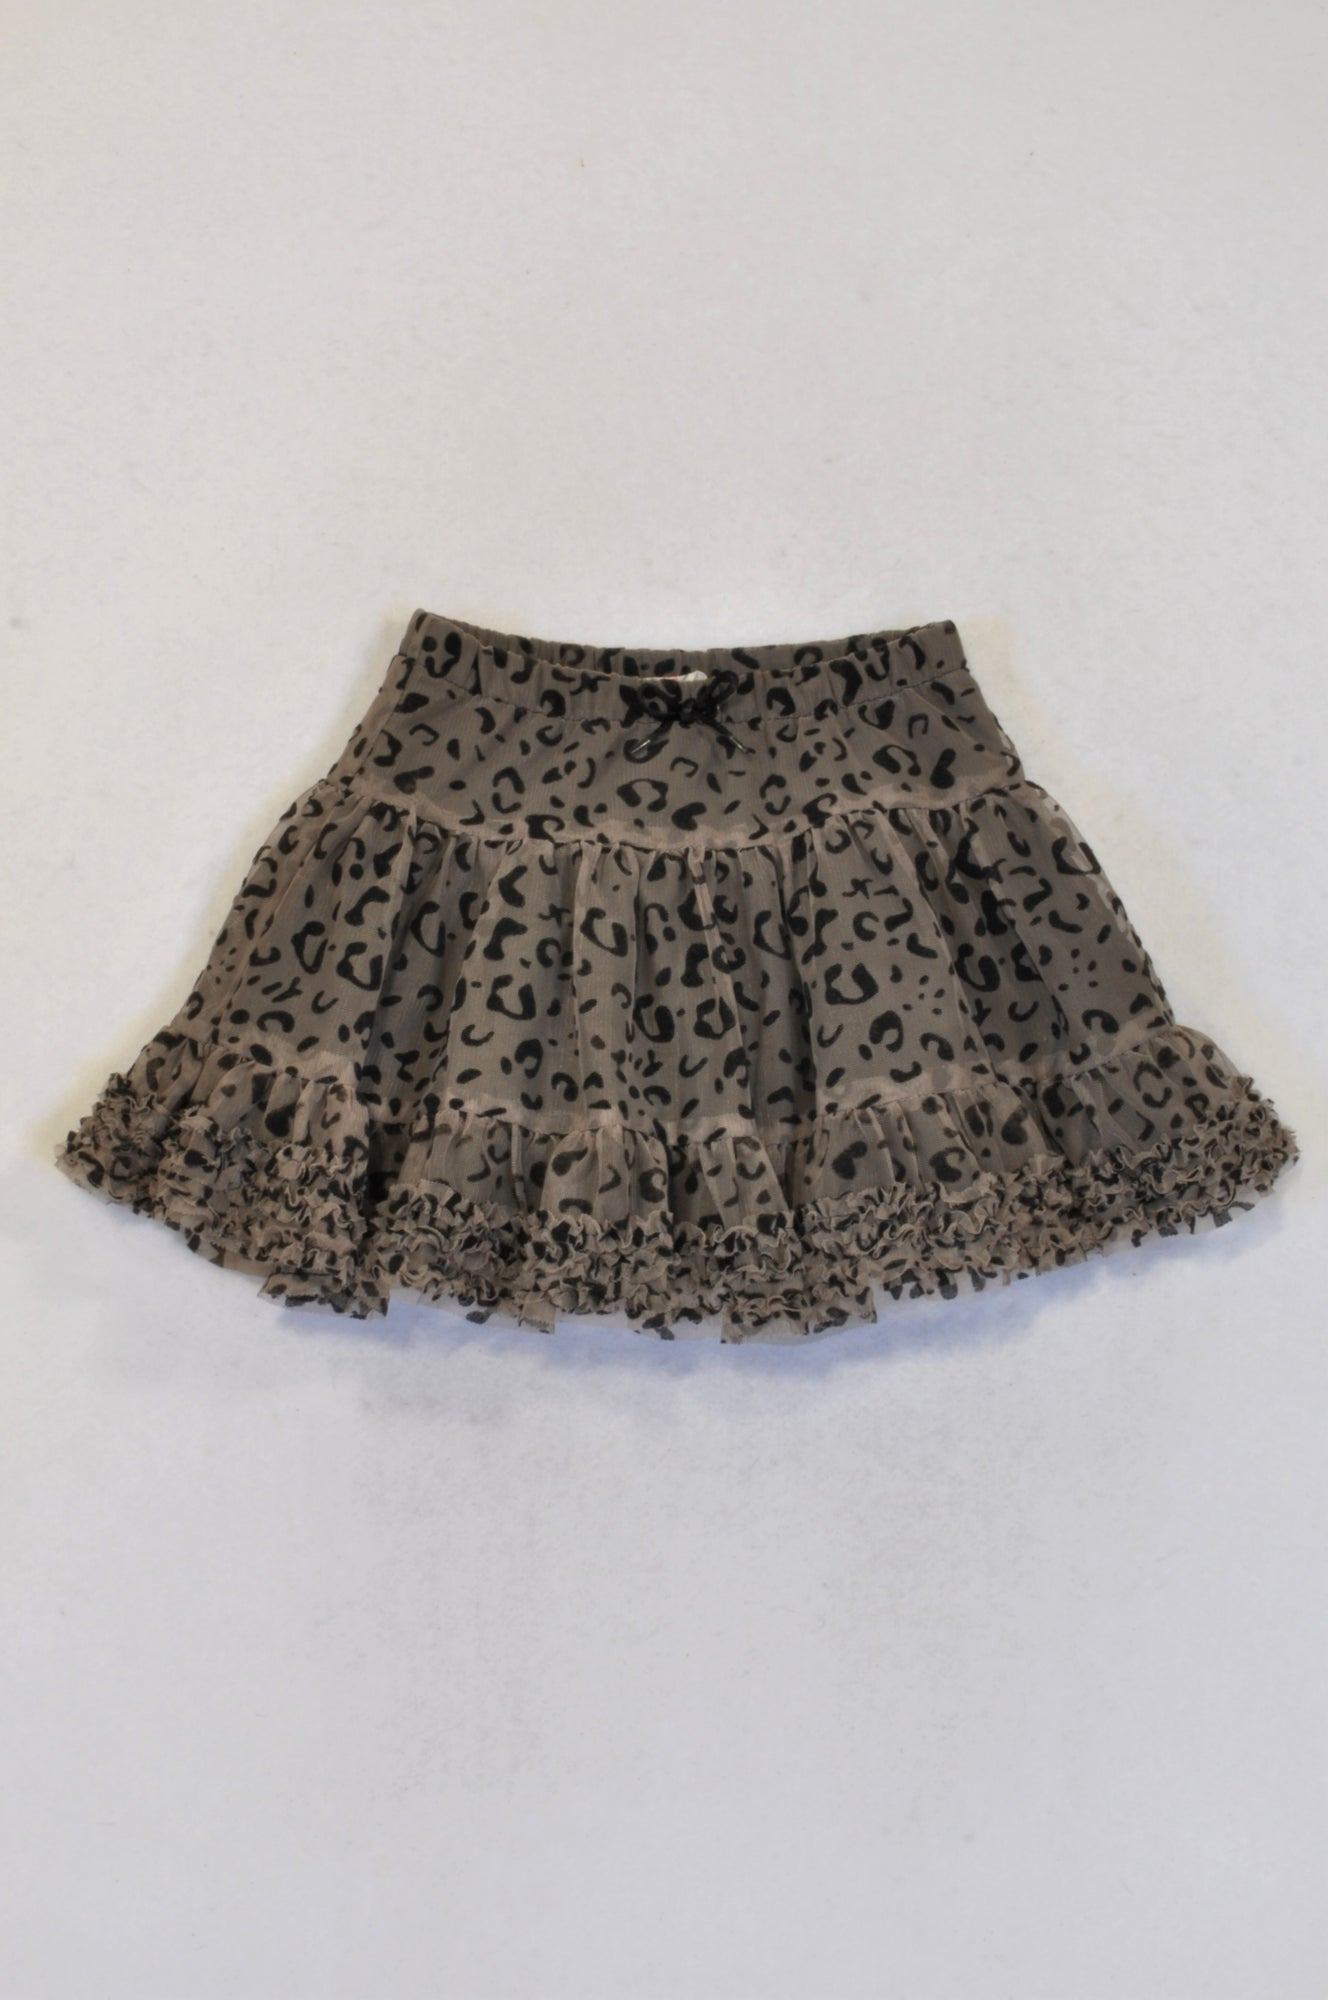 H&M Olive Leopard Print Tulle Skirt Girls 3-4 years